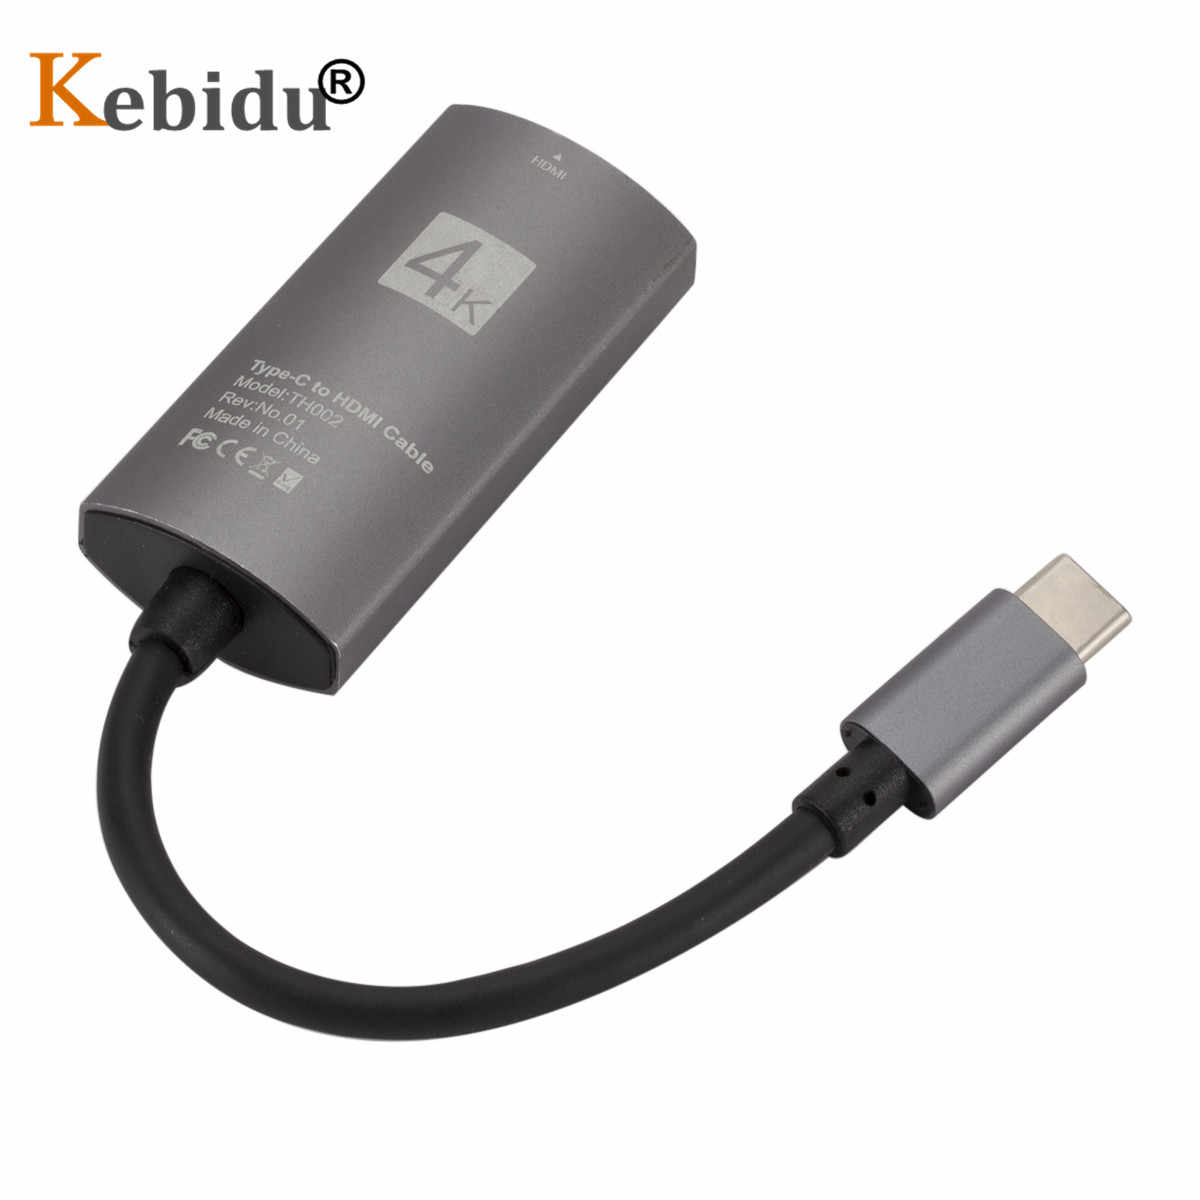 4K 60Hz HDMI TV Stick tipo C a HDMI convertidor HDTV pantalla TV Dongle receptor para Samsung S8 Macbook a TV proyector espejo